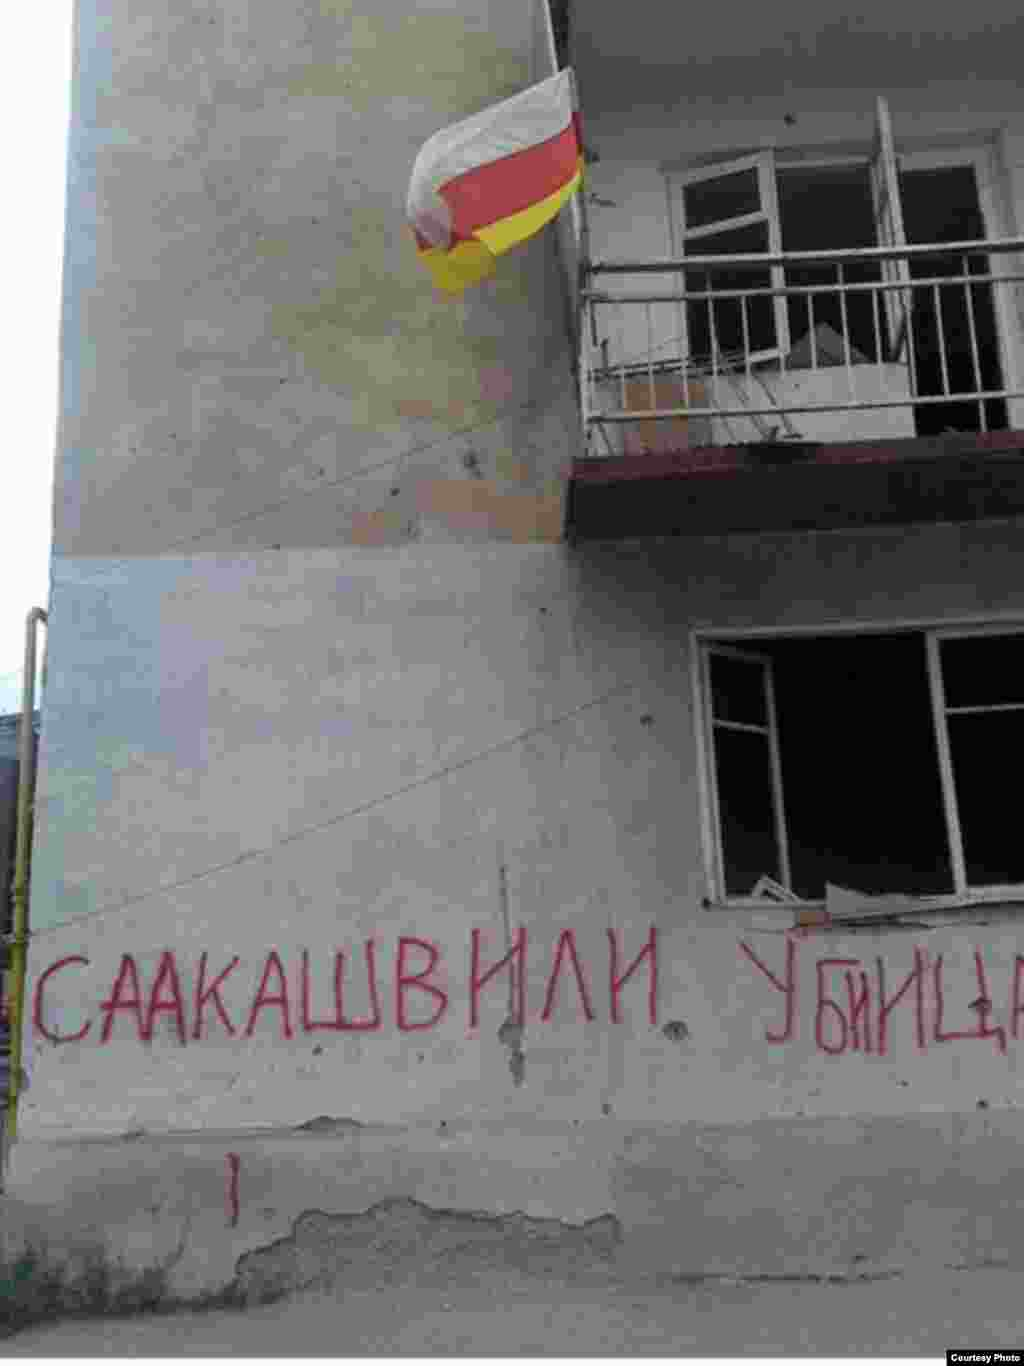 """Saakashvili is a murderer"" -- graffiti scrawled on a destroyed house in Tskhinvali - ""The people there honestly love the Russians. ... It's more like they dread the Georgians rather than just fear them. When you say the word Saakashvili or the word Georgian, people start shaking. They are terrified of the Georgians. So I was in a sort of state of shock. I saw hundreds of demolished houses. And every family I spoke to recounted horrifying stories about...the Georgians..."""